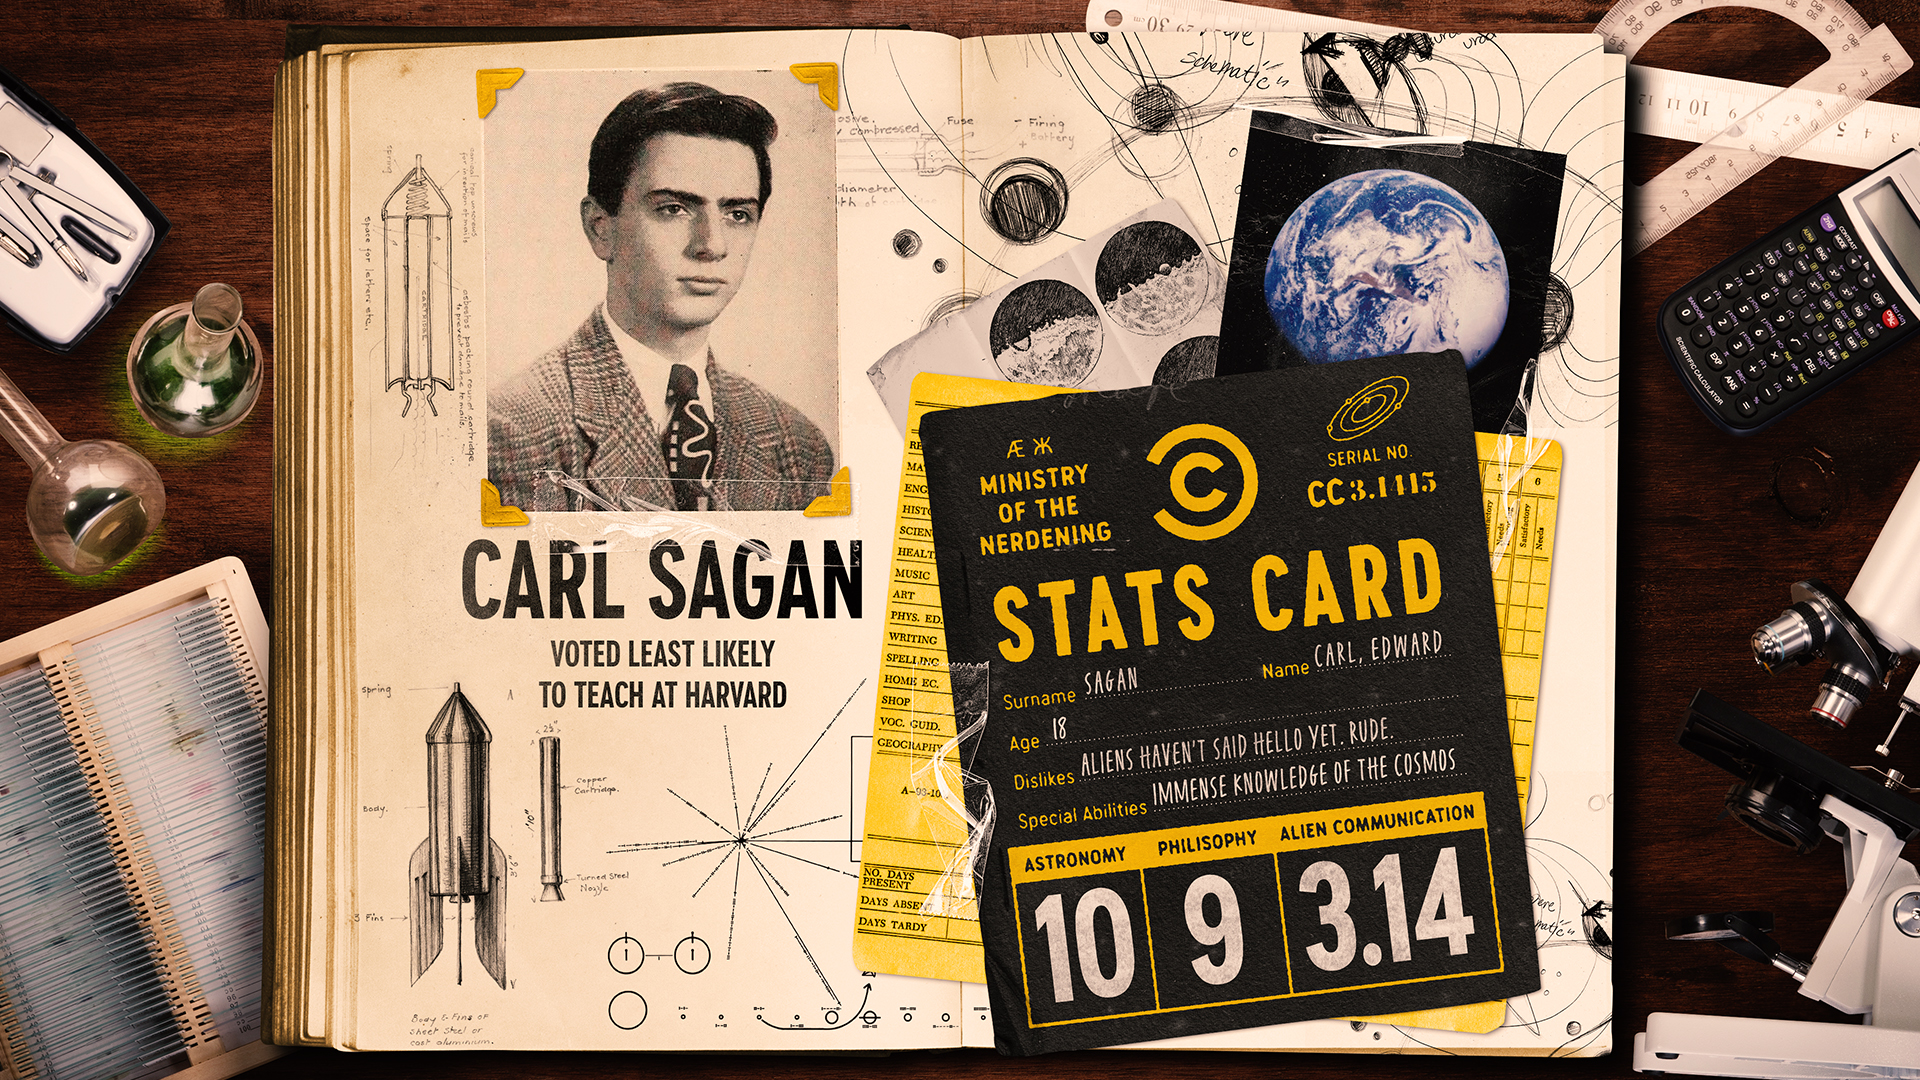 Photo of Carl Sagan in a yearbook for Comedy Central